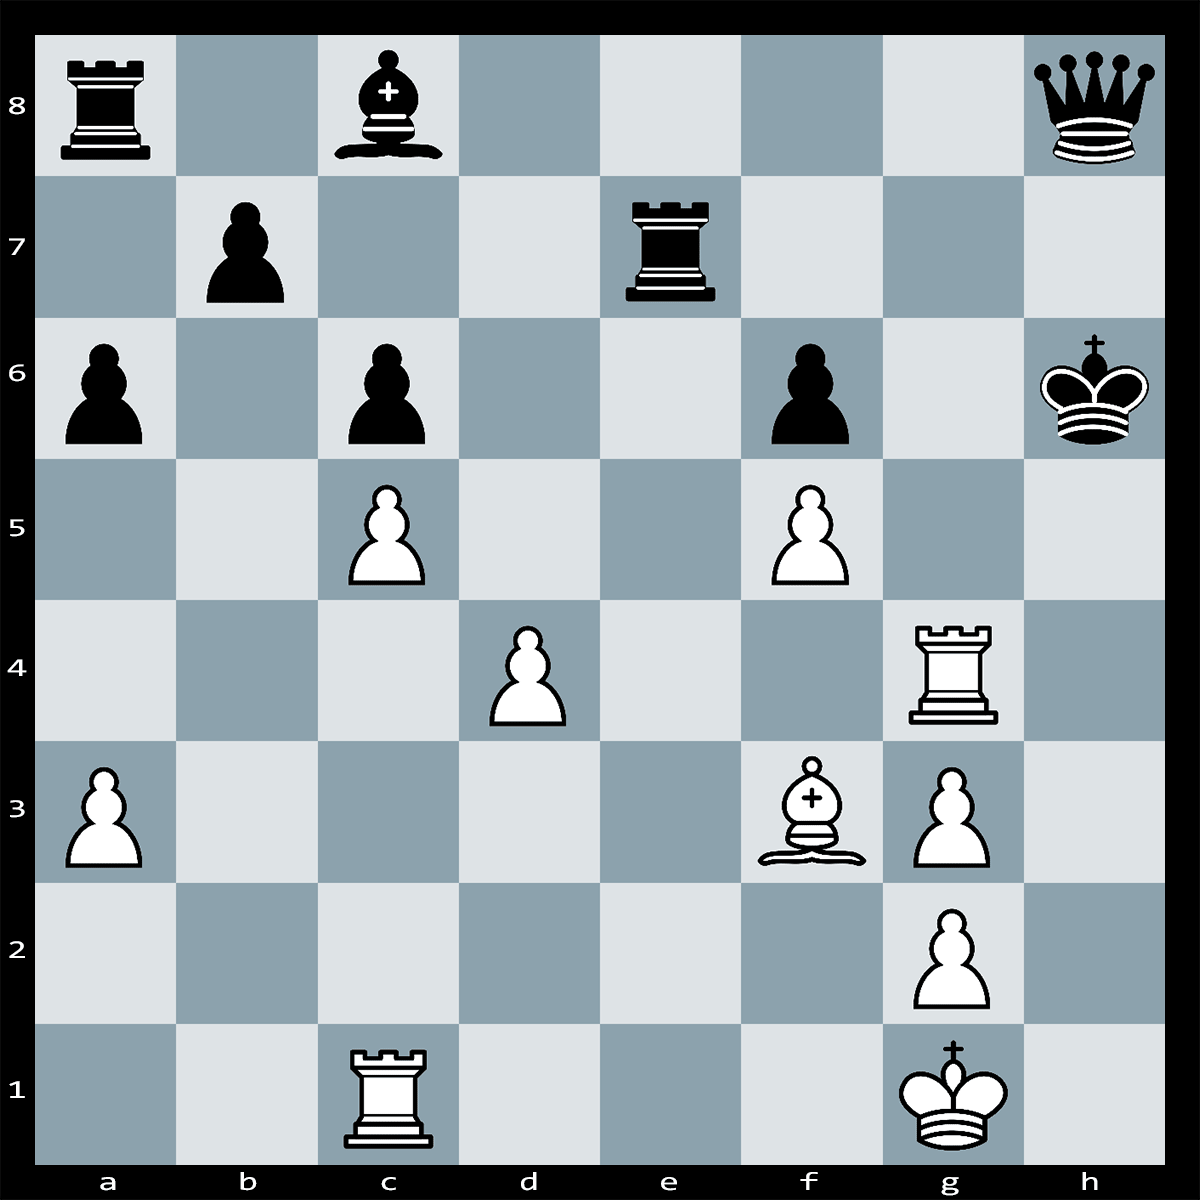 Chess Puzzle #311 | What is the best continuation to this puzzle? White to Play and Win the Game. Hard Chess Puzzle.